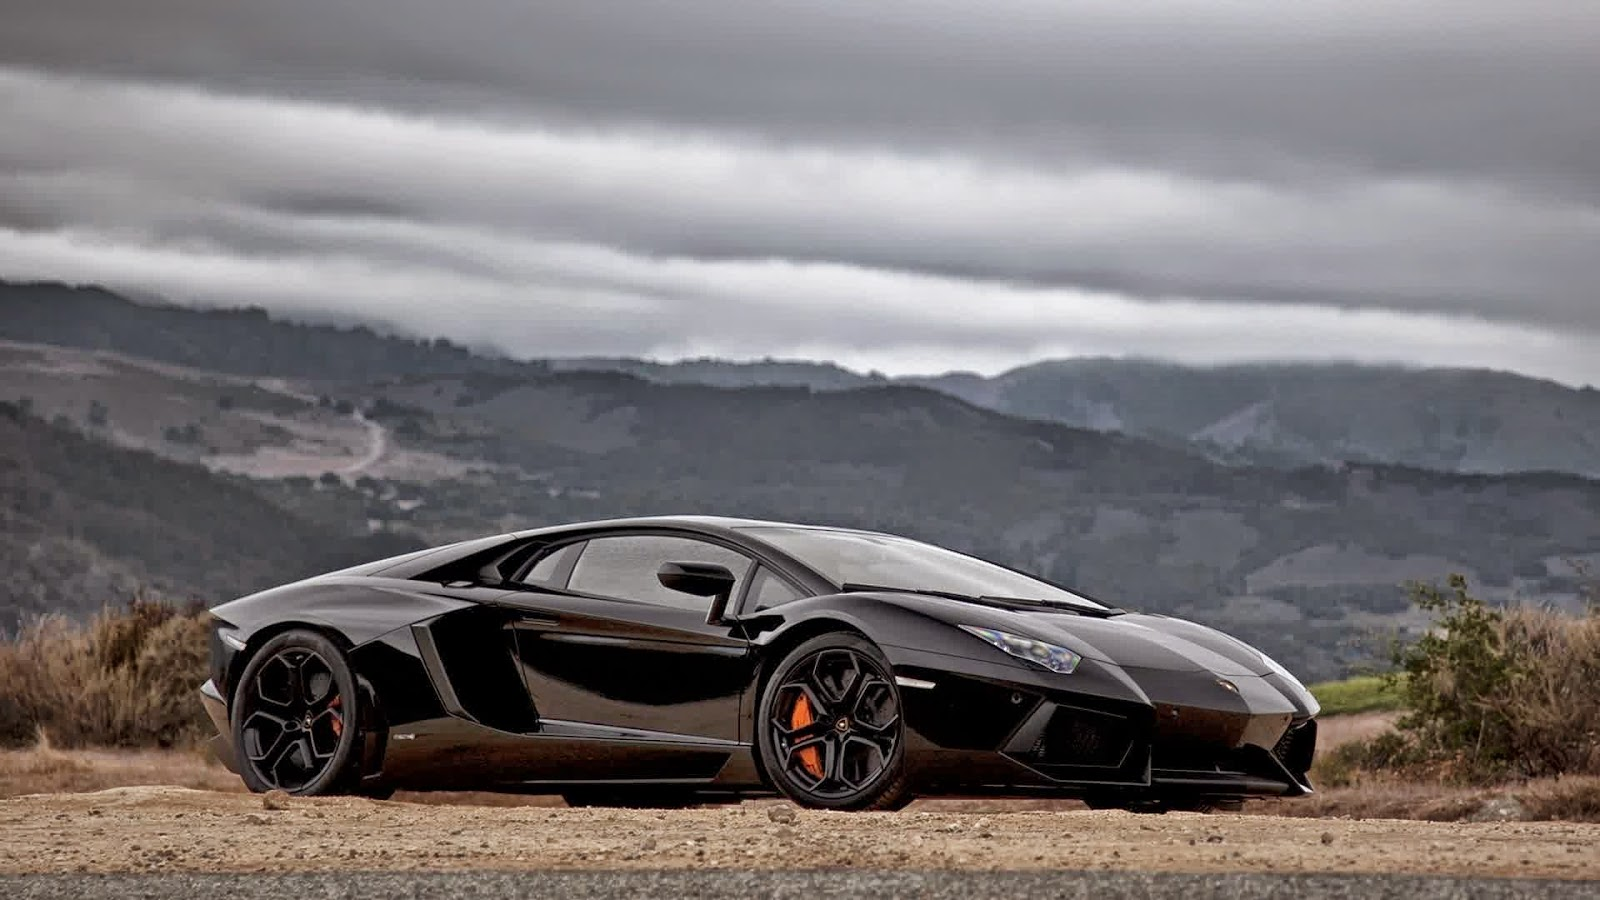 Black Lamborghini Aventador Wallpapers On the Mountain   Mas Yadi 1600x900